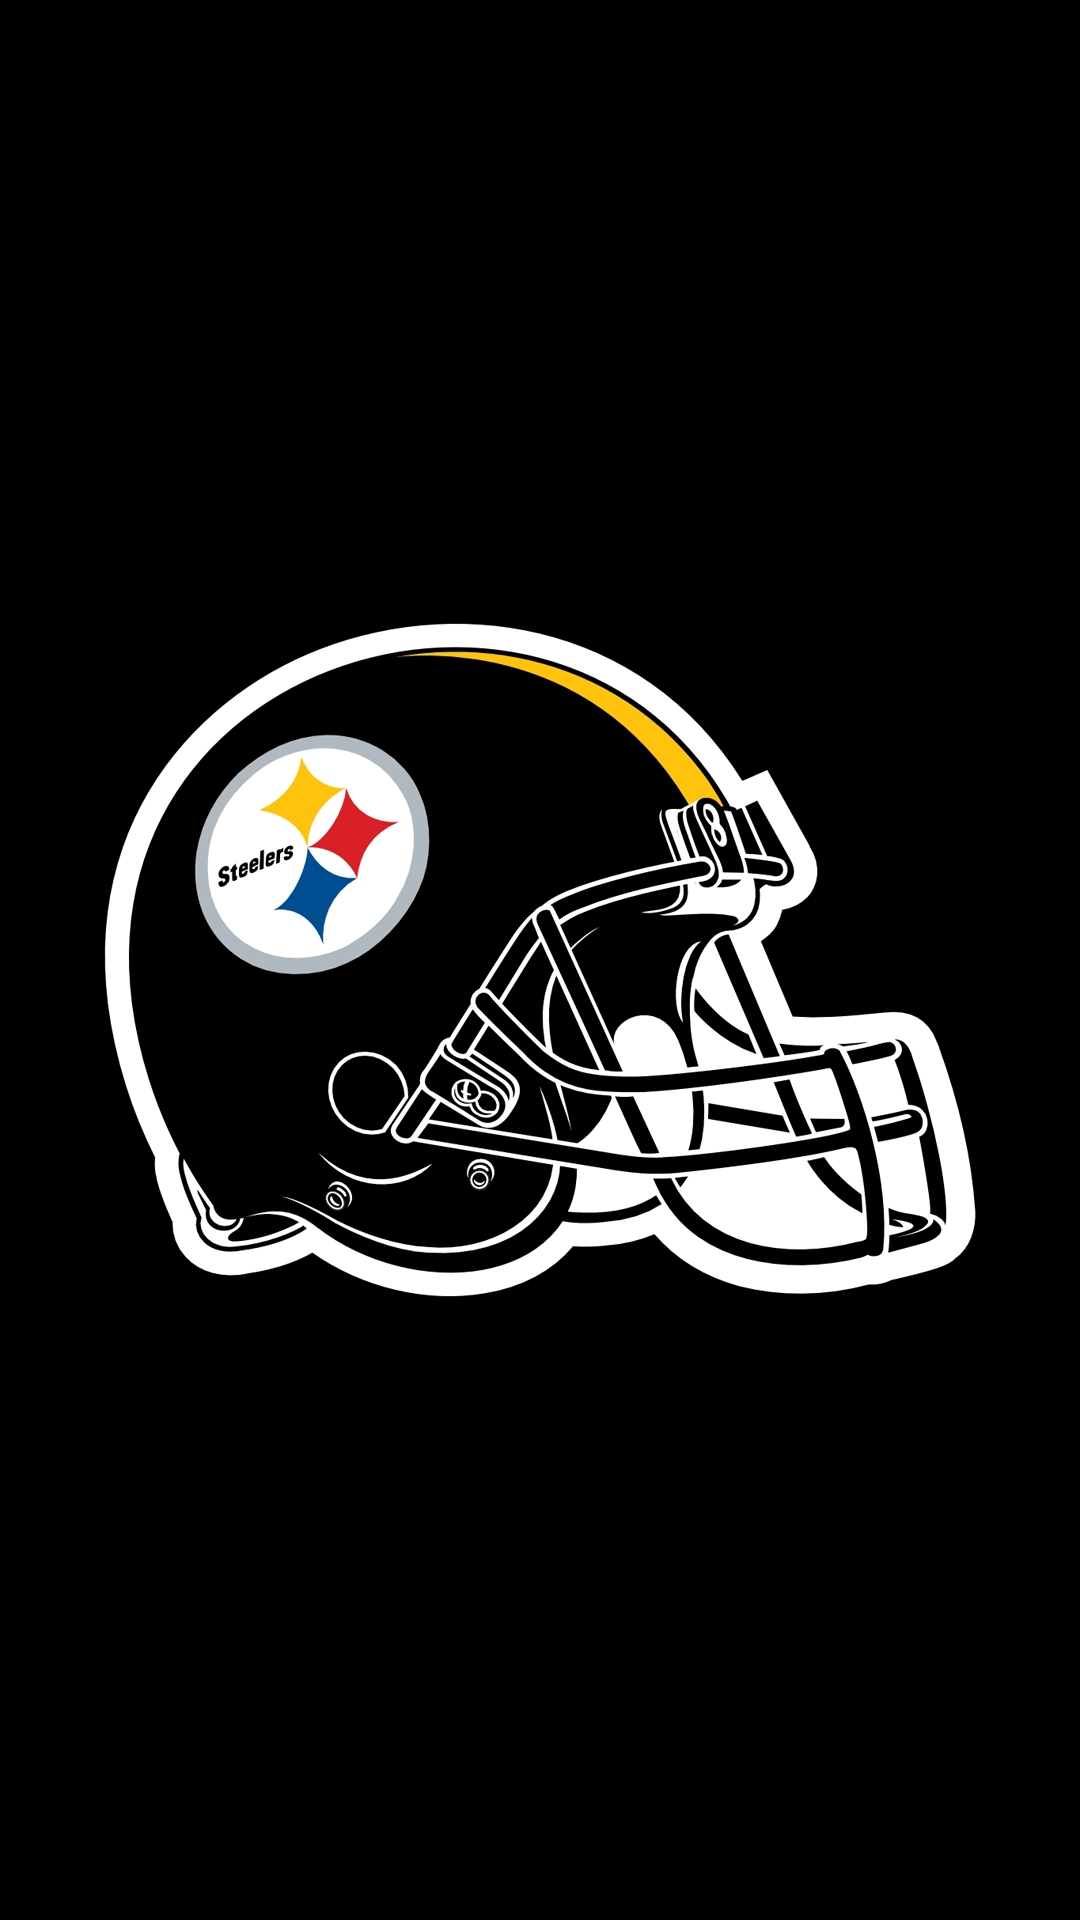 steelers wallpapers 2017 - wallpaper cave